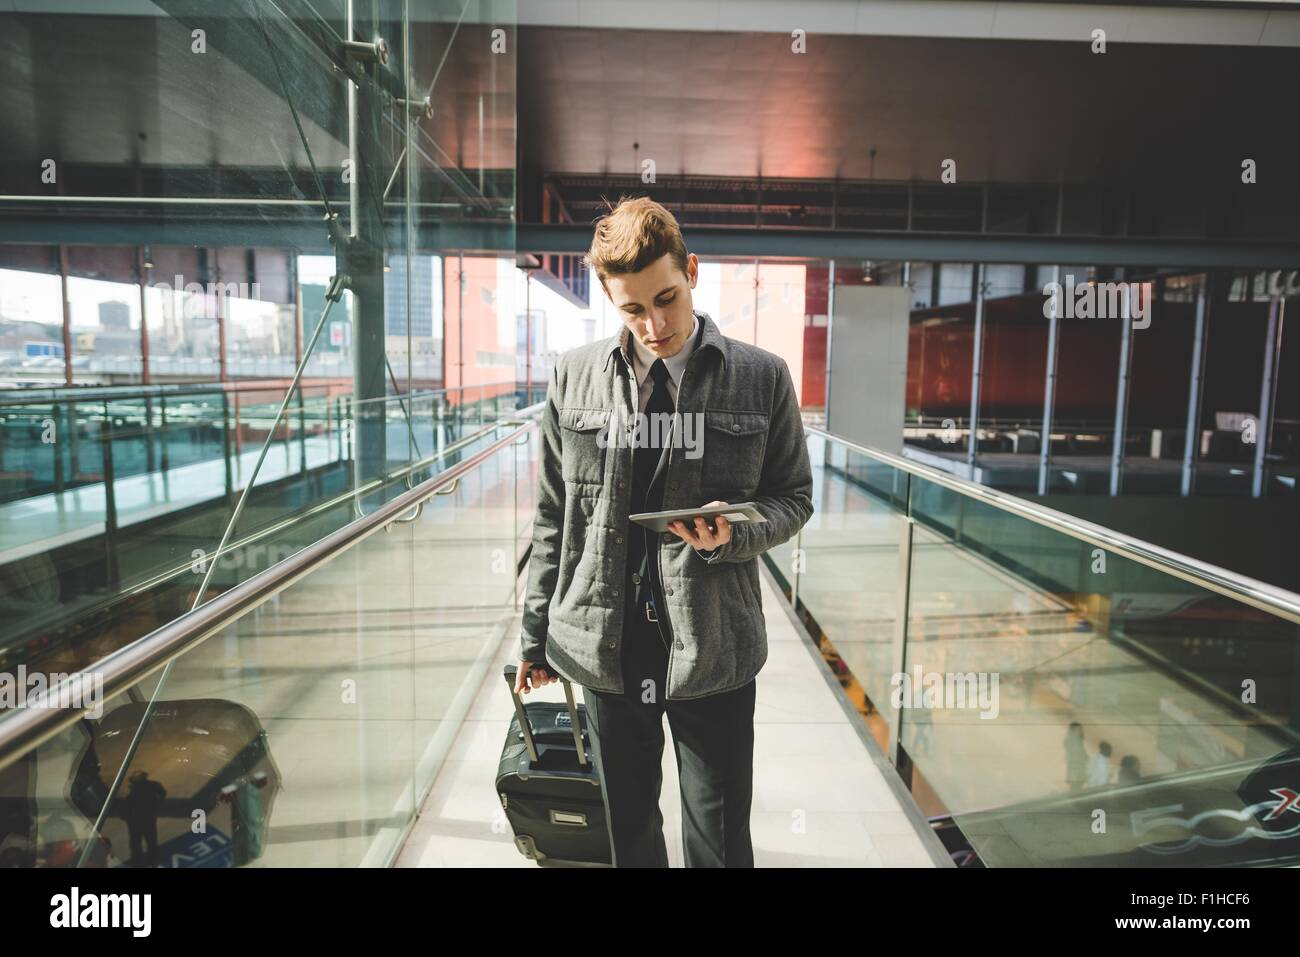 Portrait of young businessman commuter using digital tablet at train station. - Stock Image